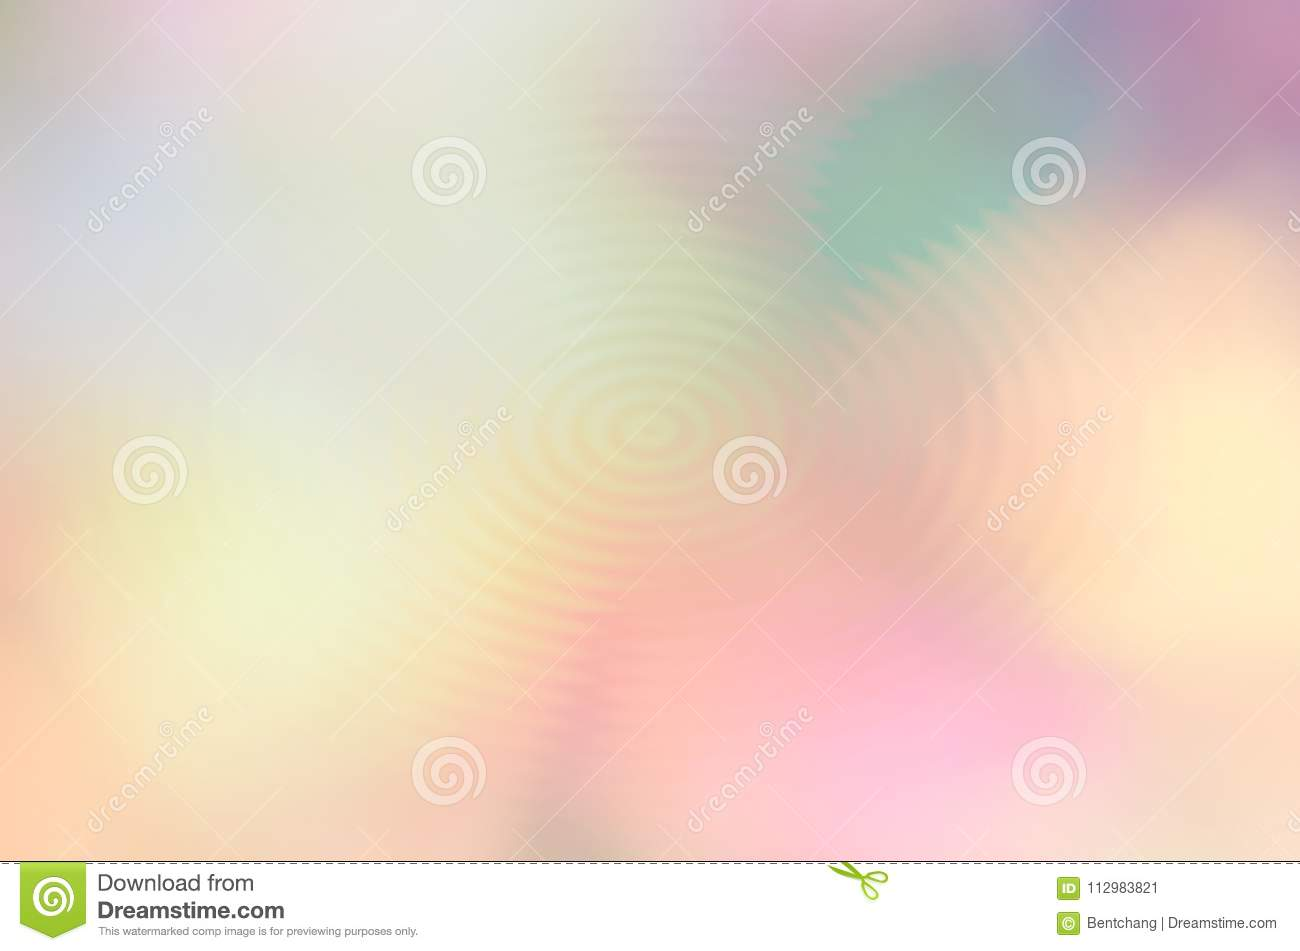 Motion illustrations background abstract, blur texture. Imagination, smooth, dream & dreamy.